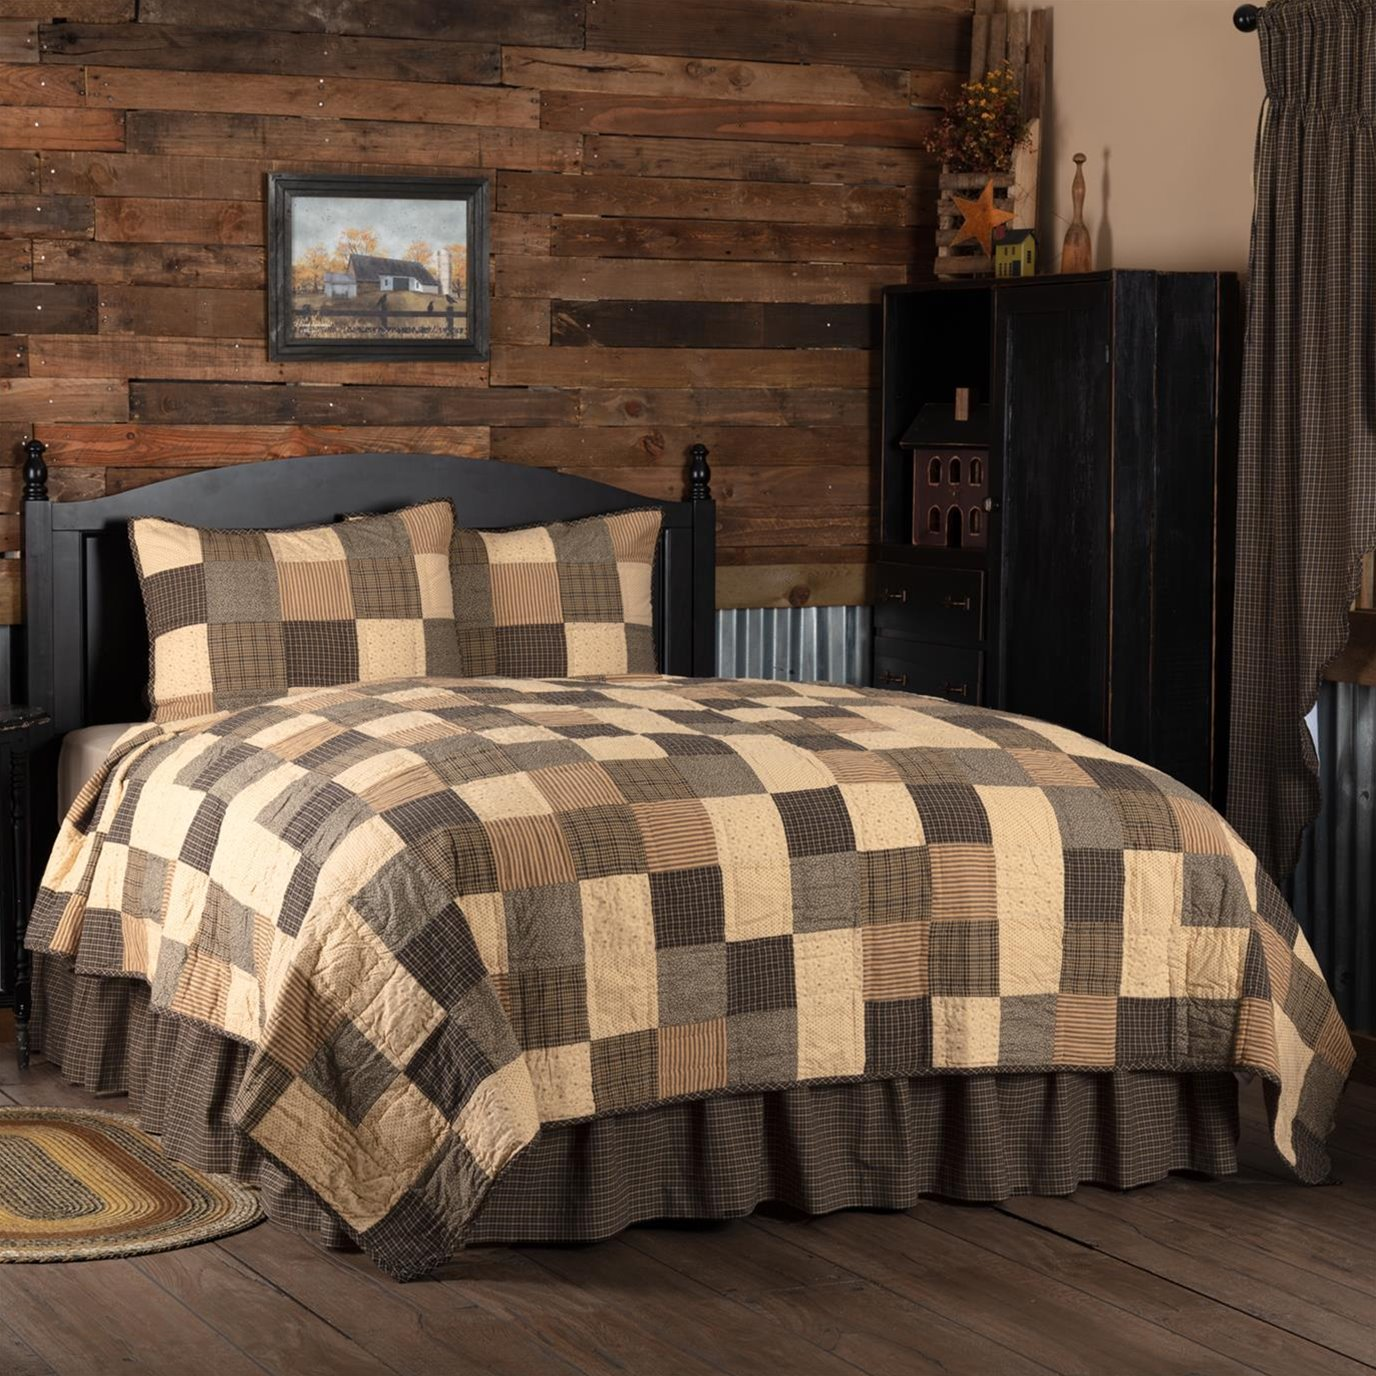 Kettle Grove Queen Quilt Set; 1-Quilt 94Wx94L w/2 Shams 21x27